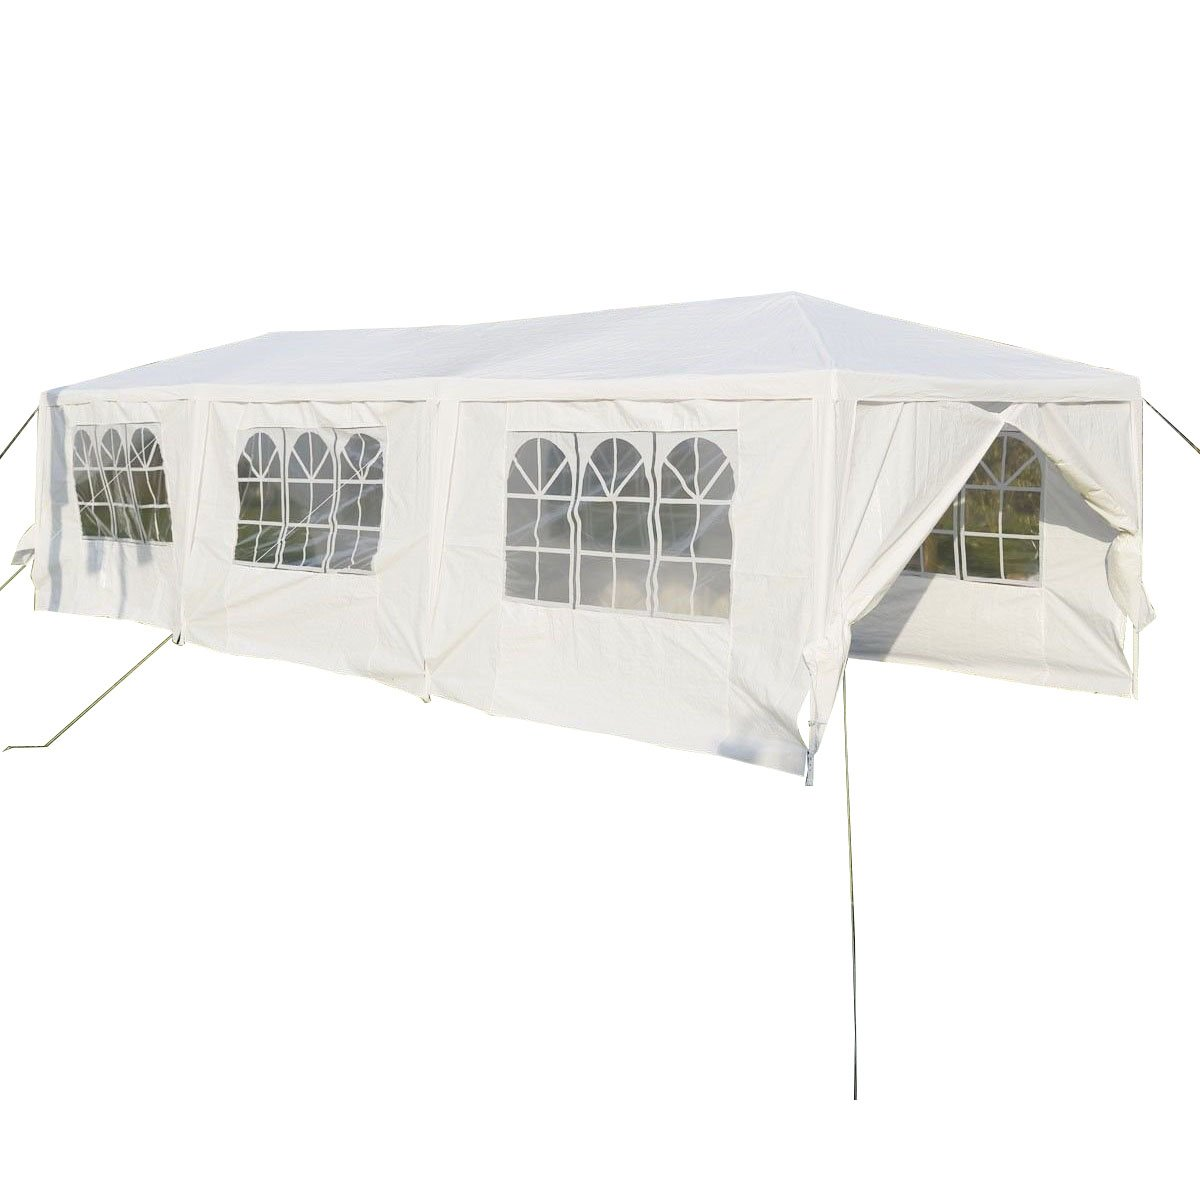 Patiojoy 10'x30' Outdoor Canopy Tent Heavy Duty Steel Frame with 6  Removable Sidewalls Waterproof Sun Snow Rain Shelter Canopy BBQ Party  Wedding Event